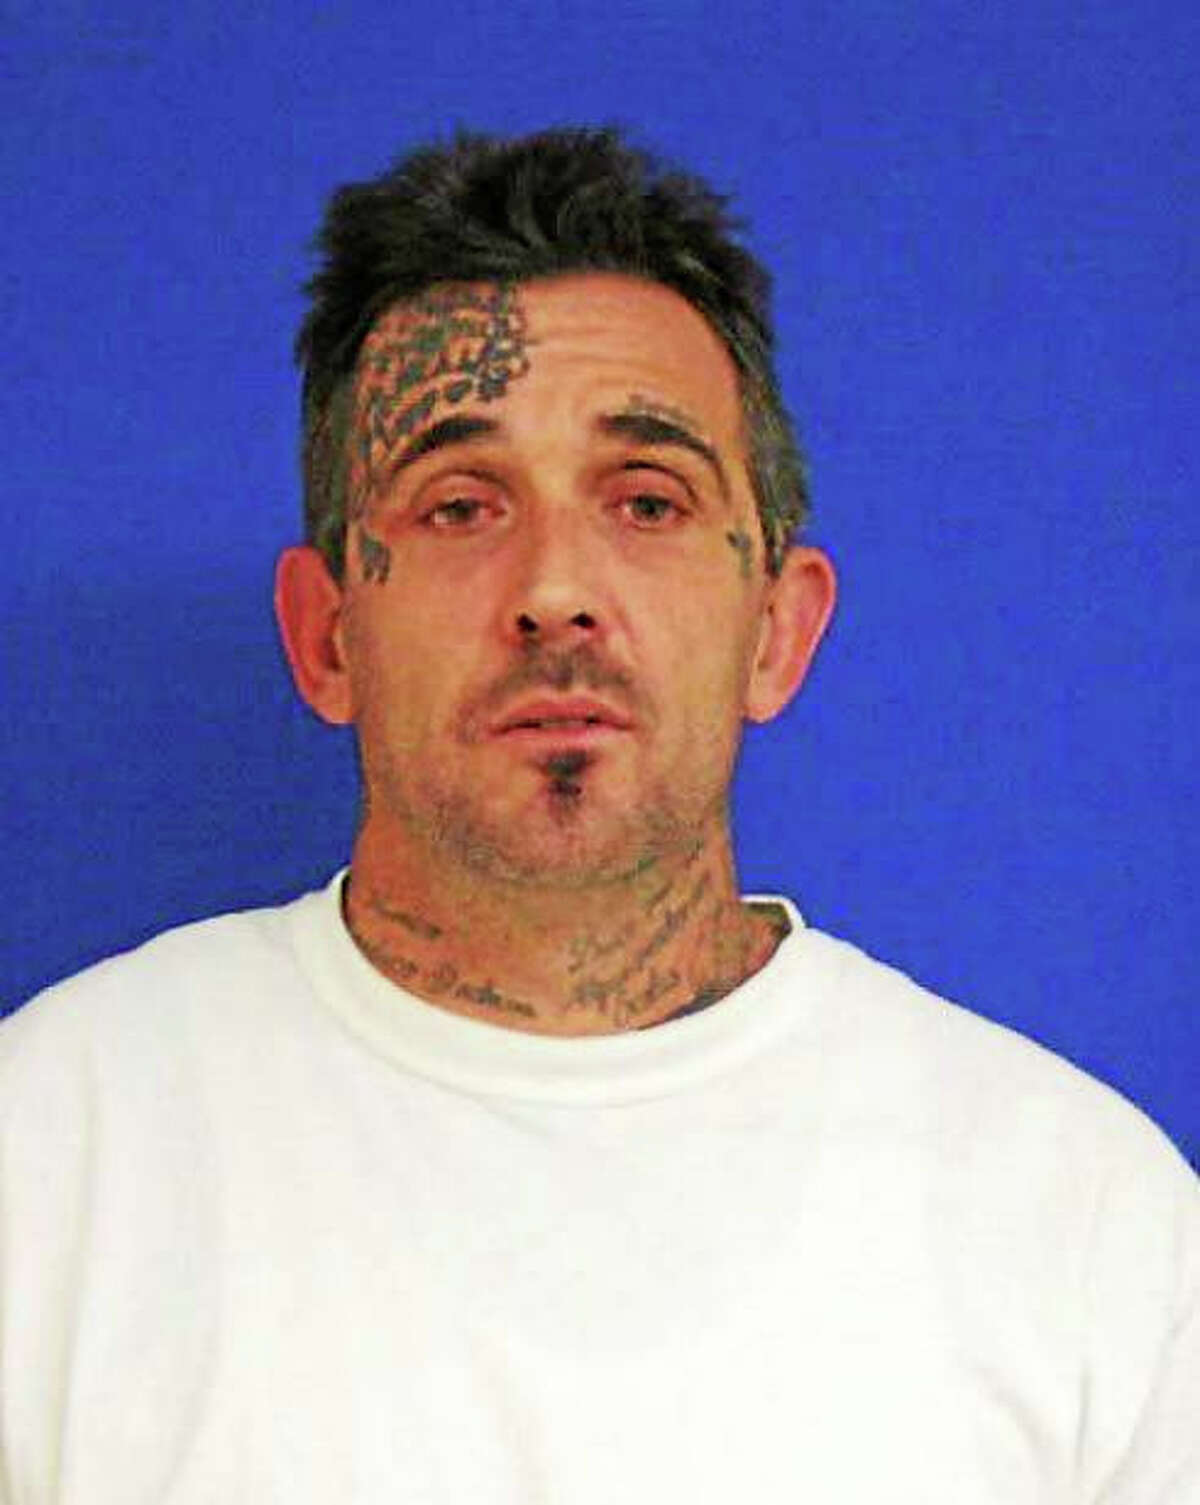 James Dietrichsen of North Haven. (Photo courtesy of East Haven police)